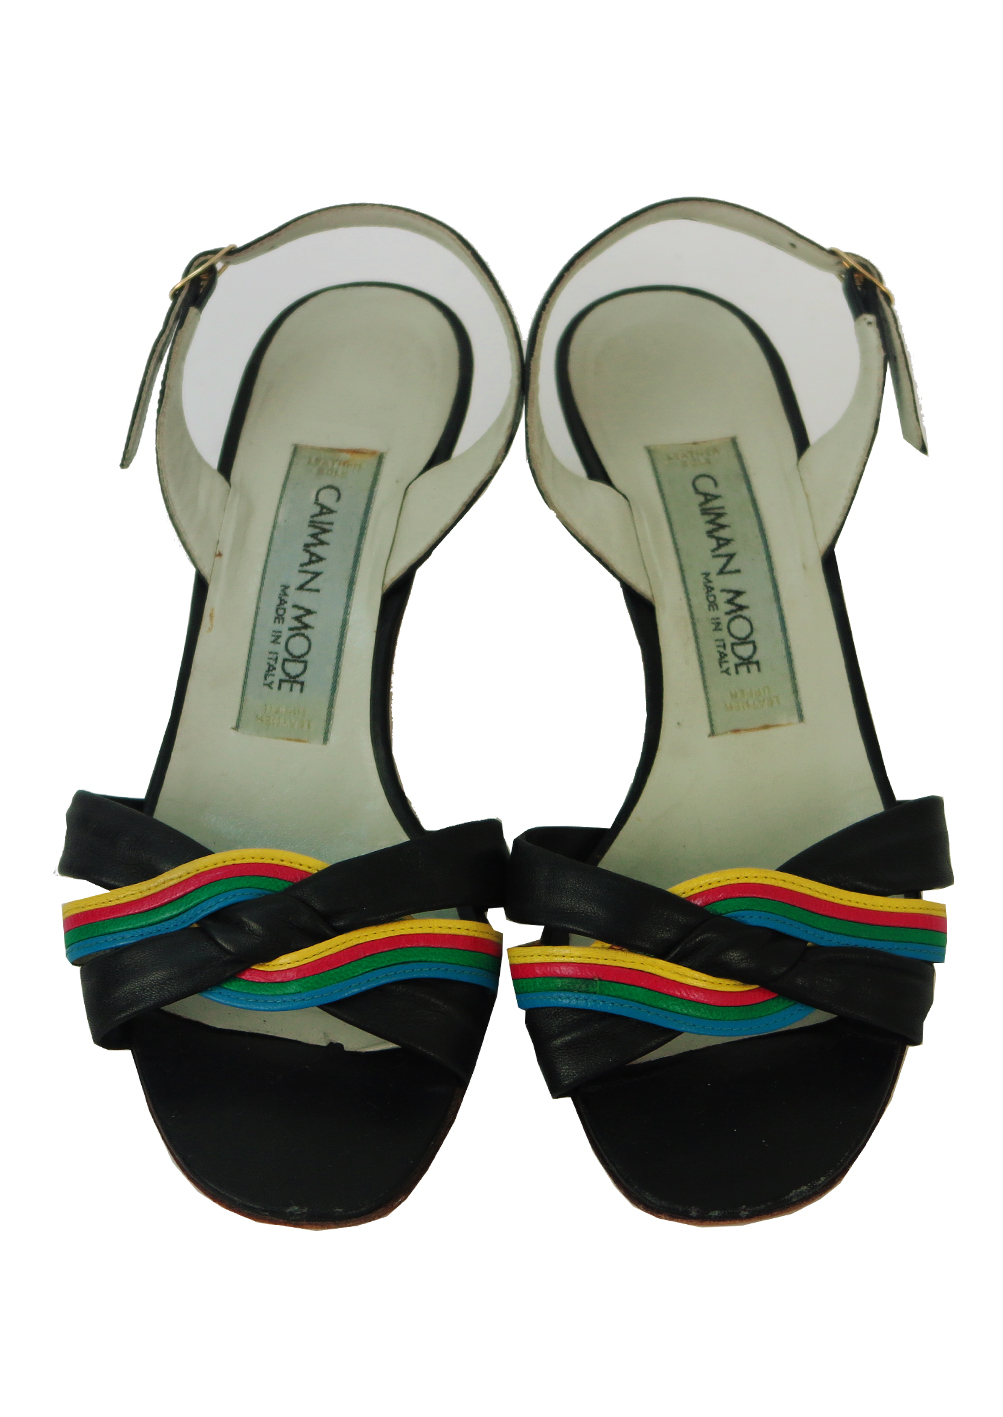 949978c8e Black Leather Slingback Low Heel Sandals with Rainbow Toe Strap Detail - UK  Size 3.5. Touch to zoom